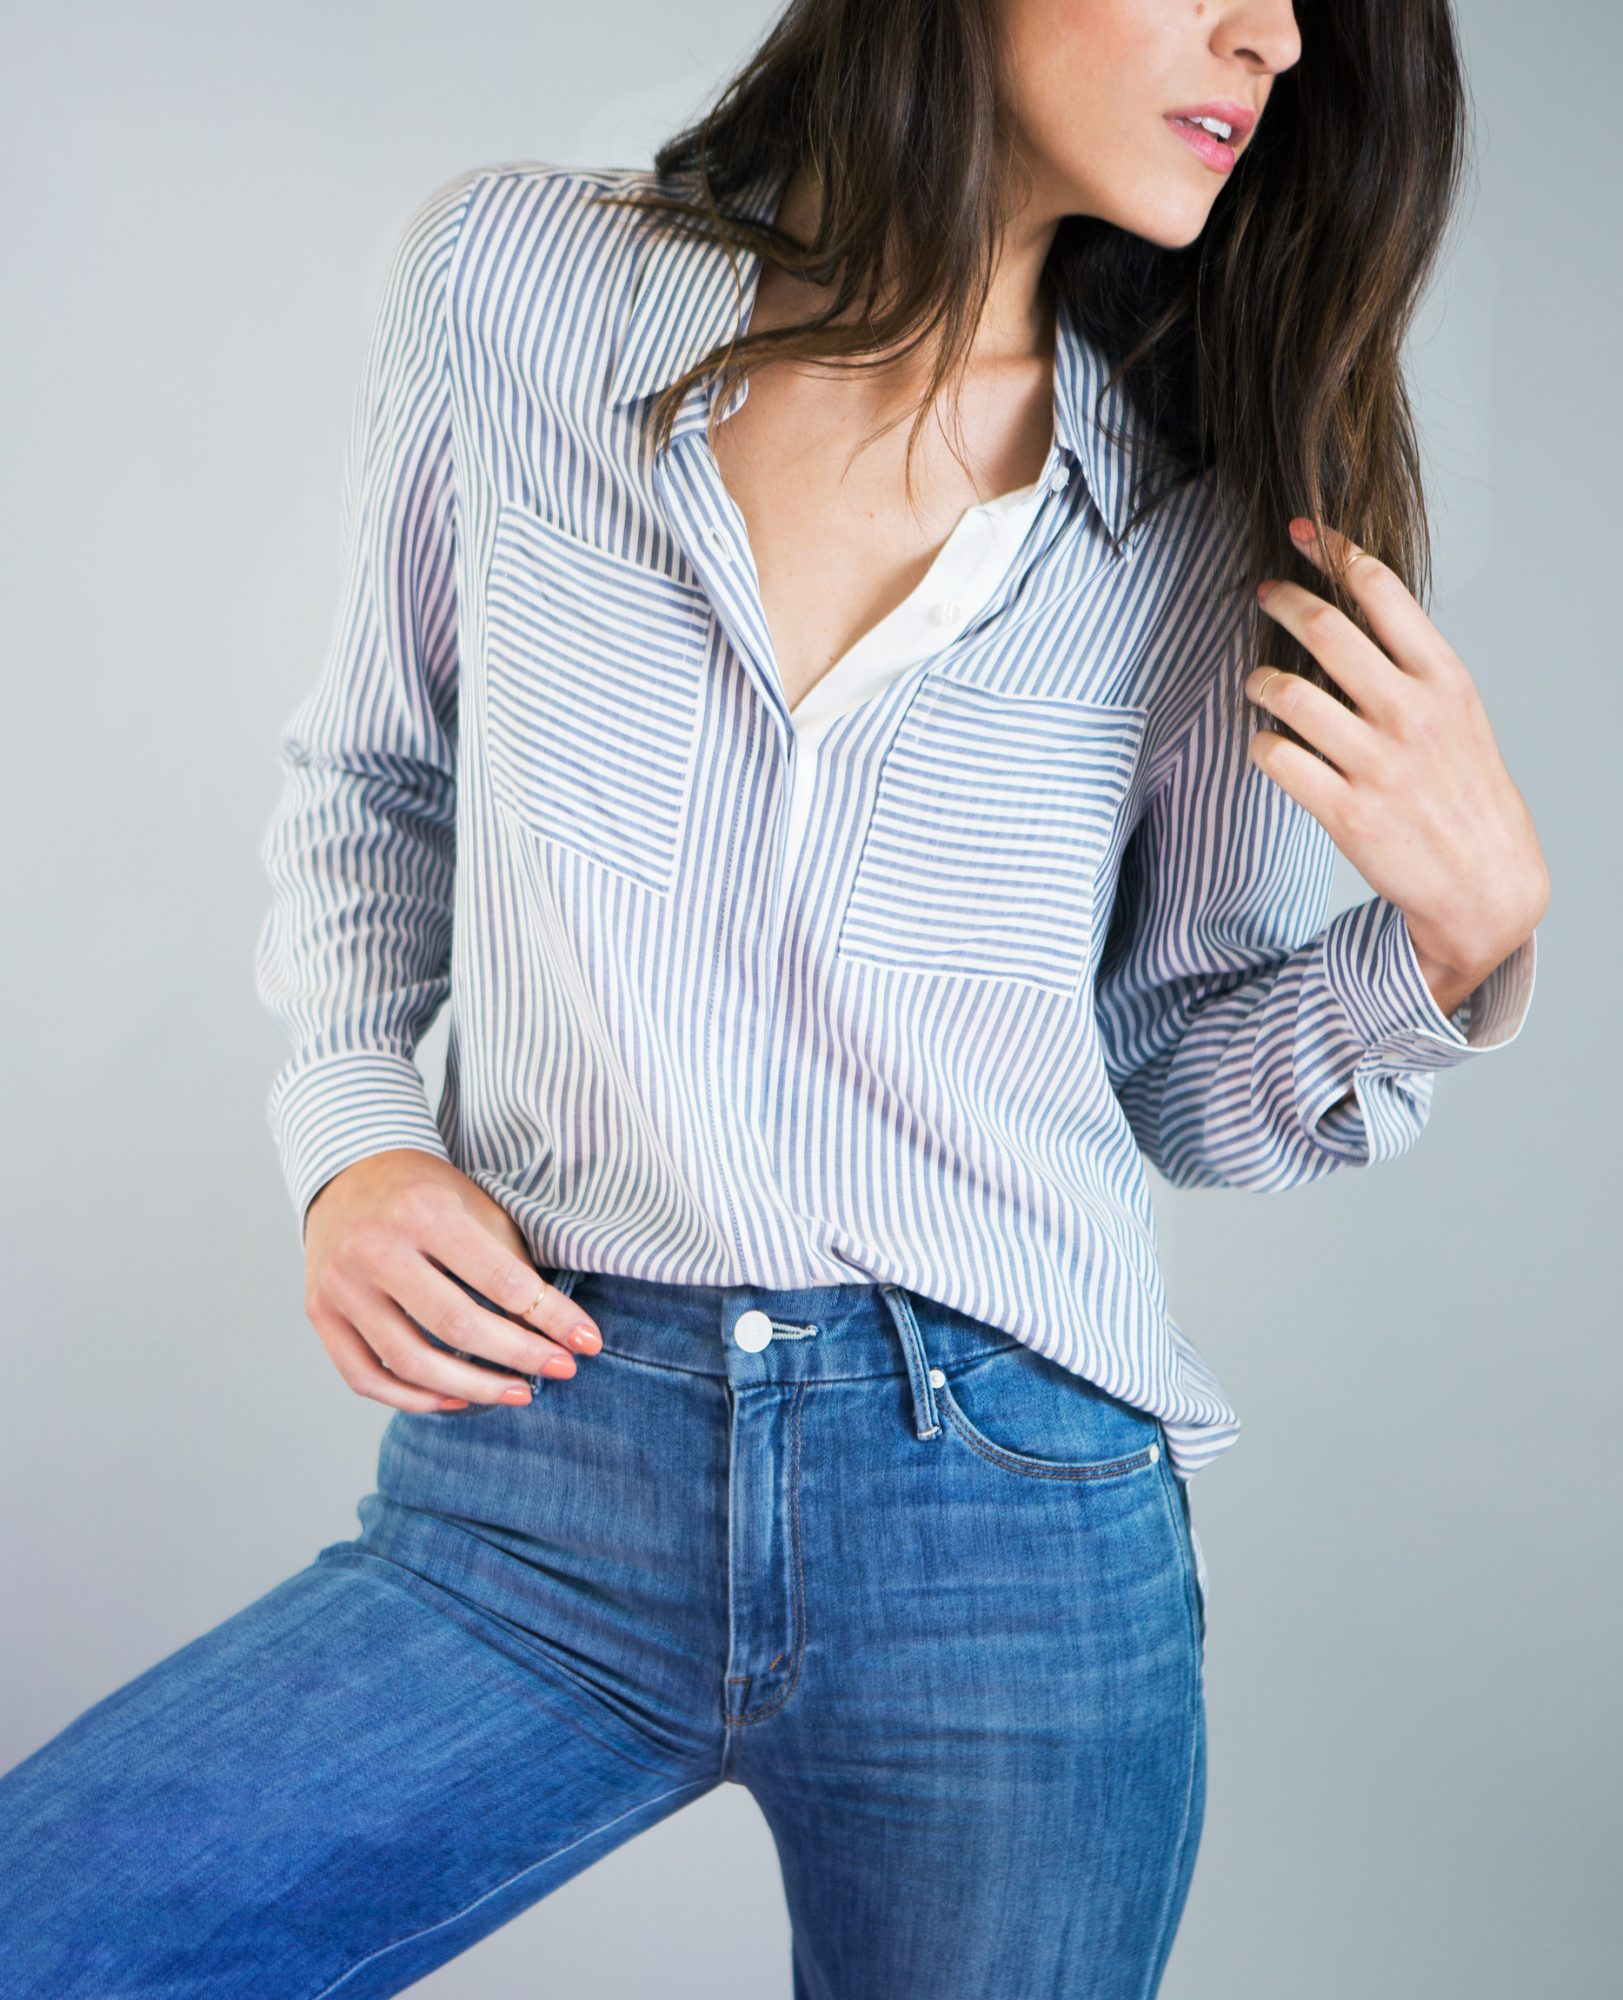 4 Ways to Stylishly Tuck In Your Shirt